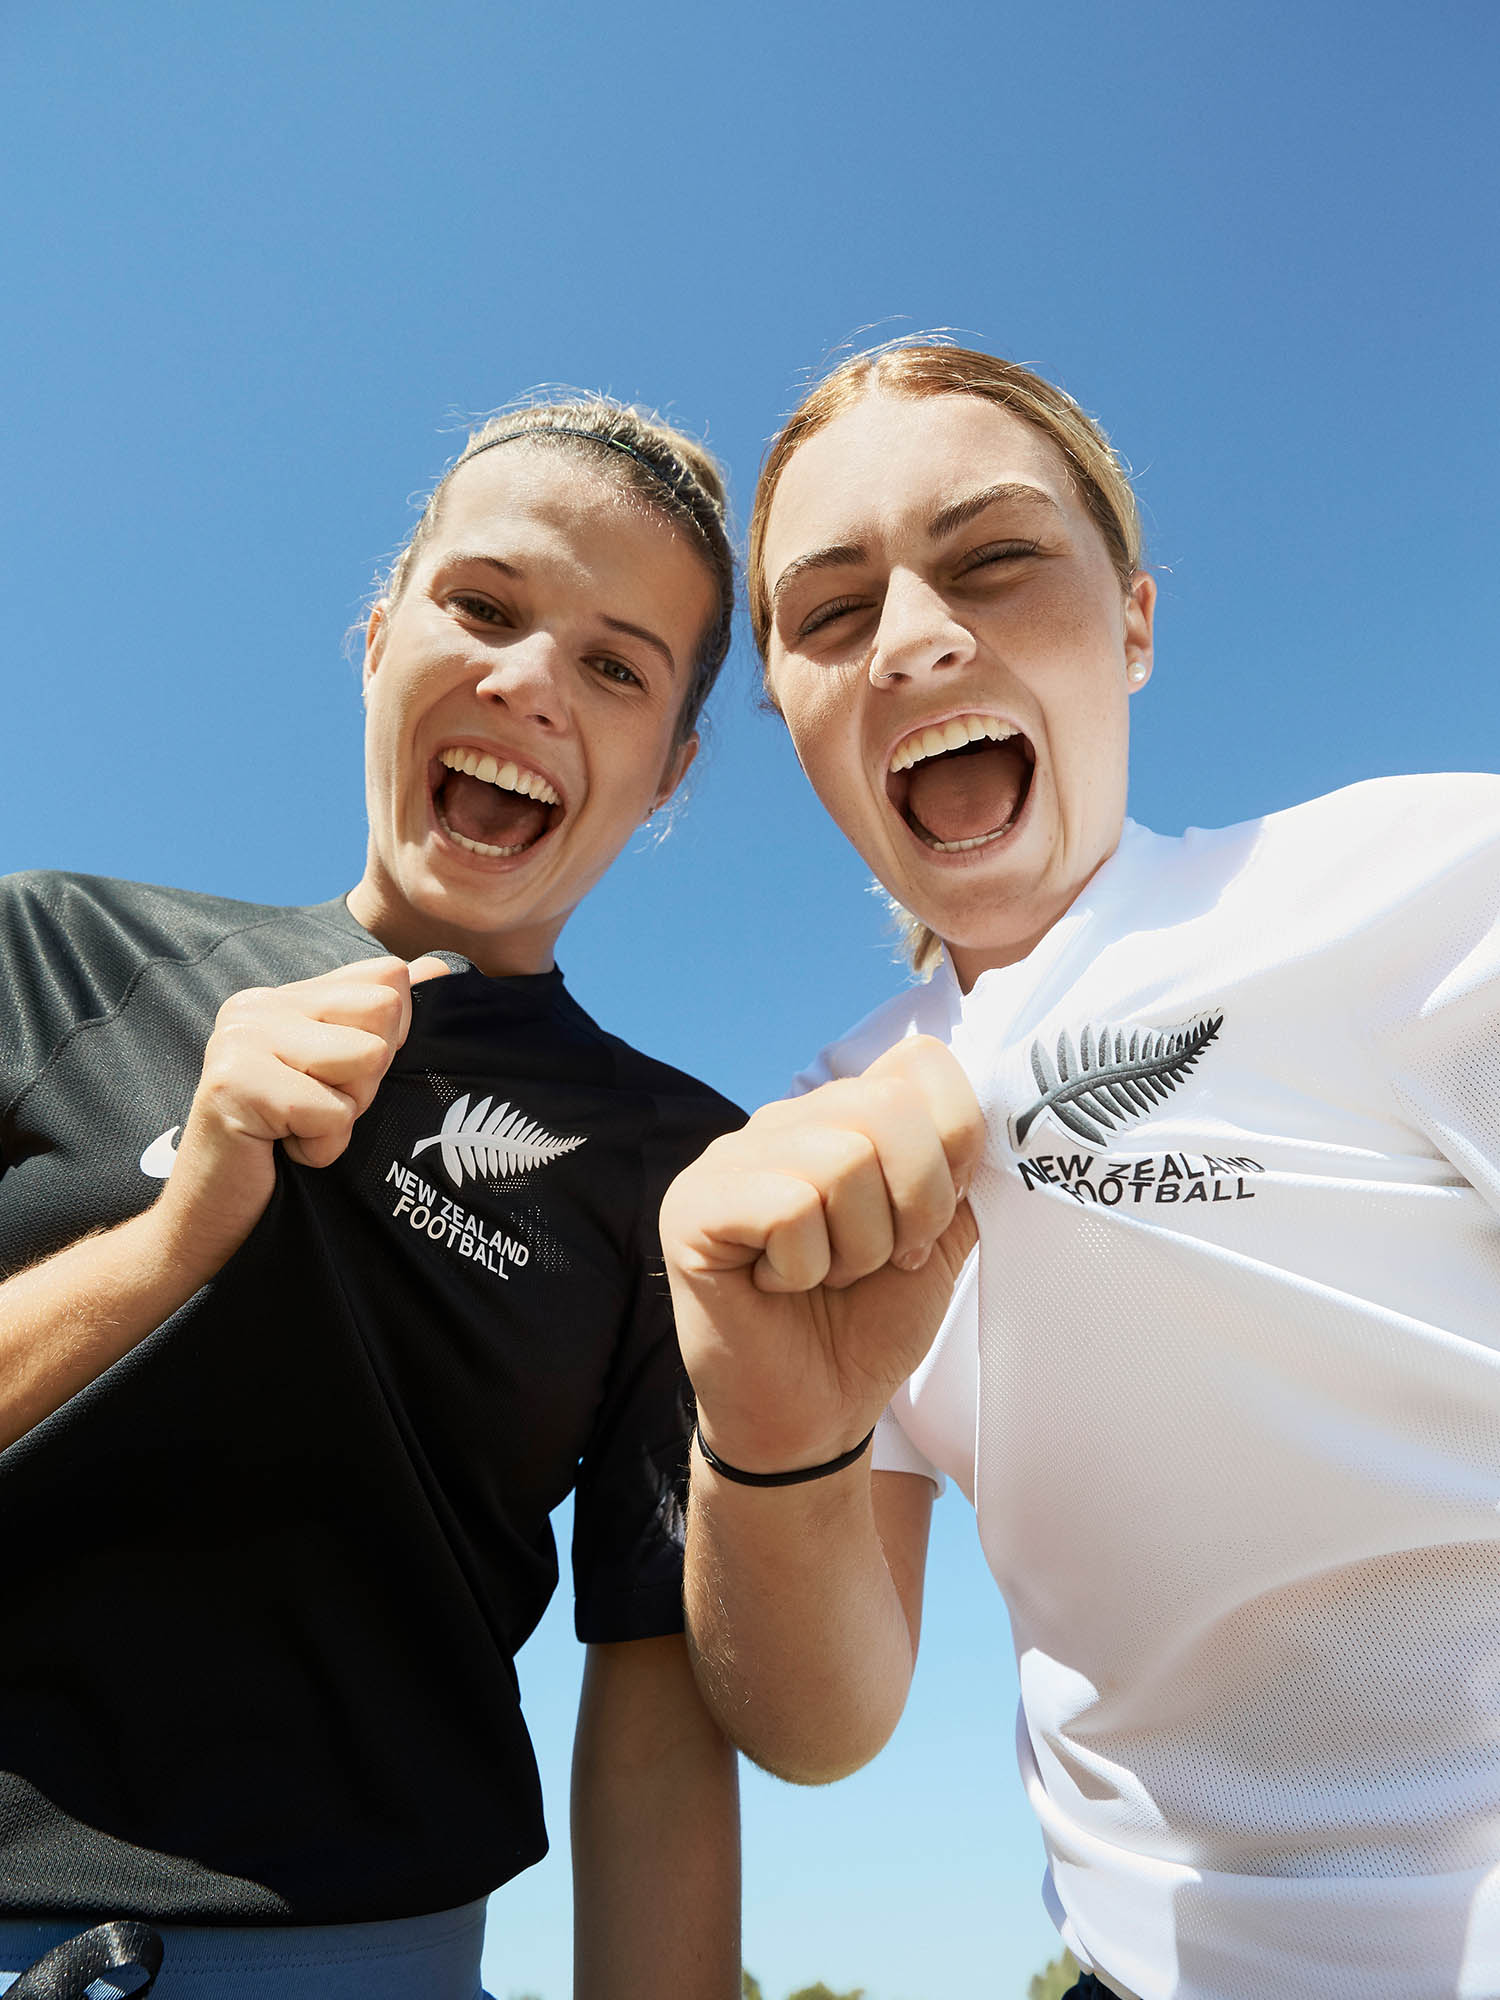 wwc portrait nike kits_0002_New-Zealand-National-Team-Kit-Community_original.jpg